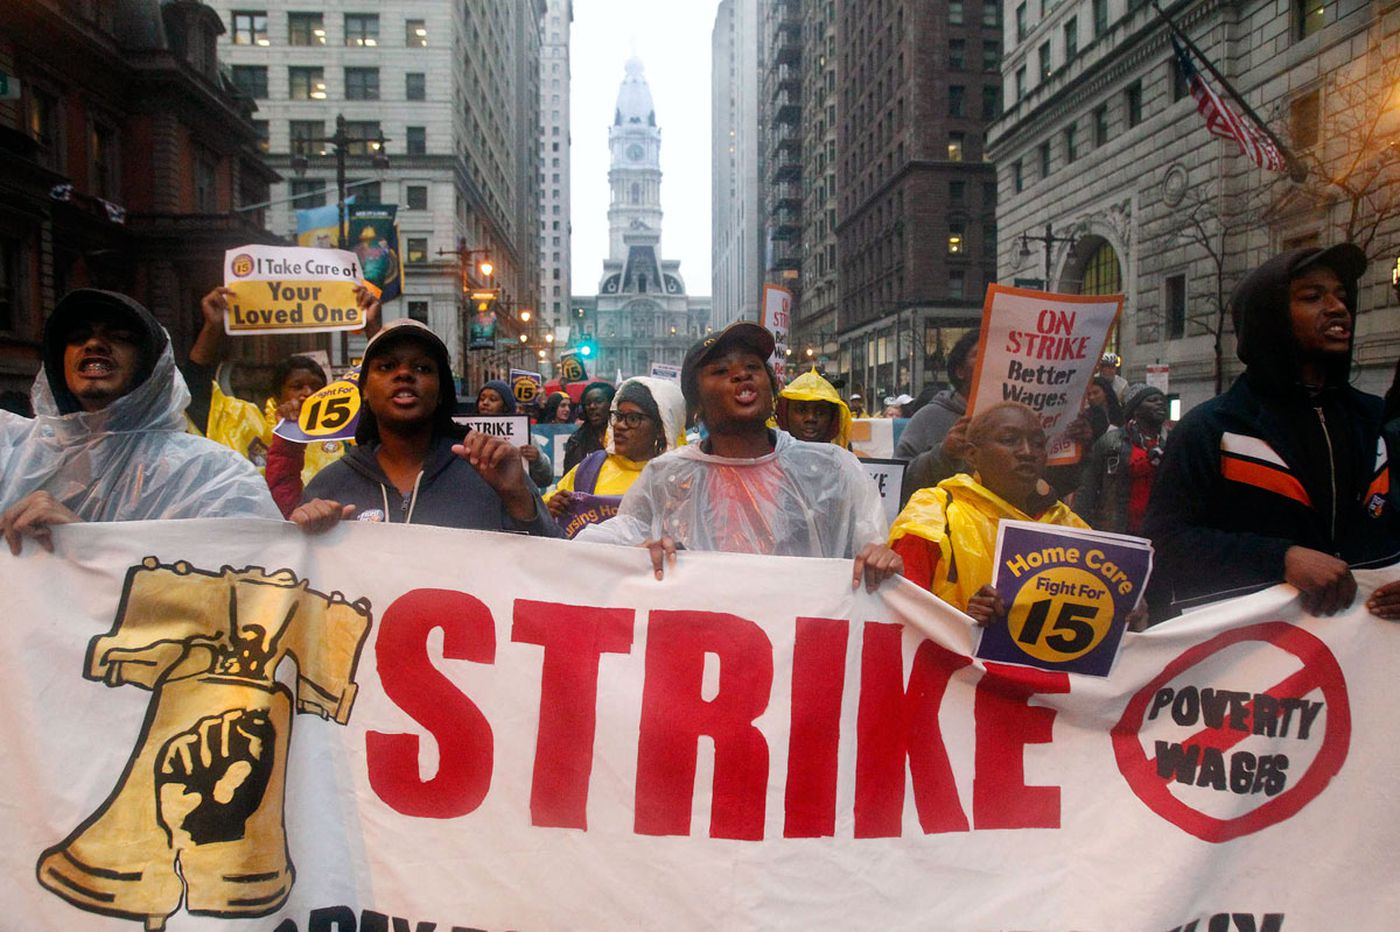 Is New Jersey's $15 minimum wage good or bad for small businesses?